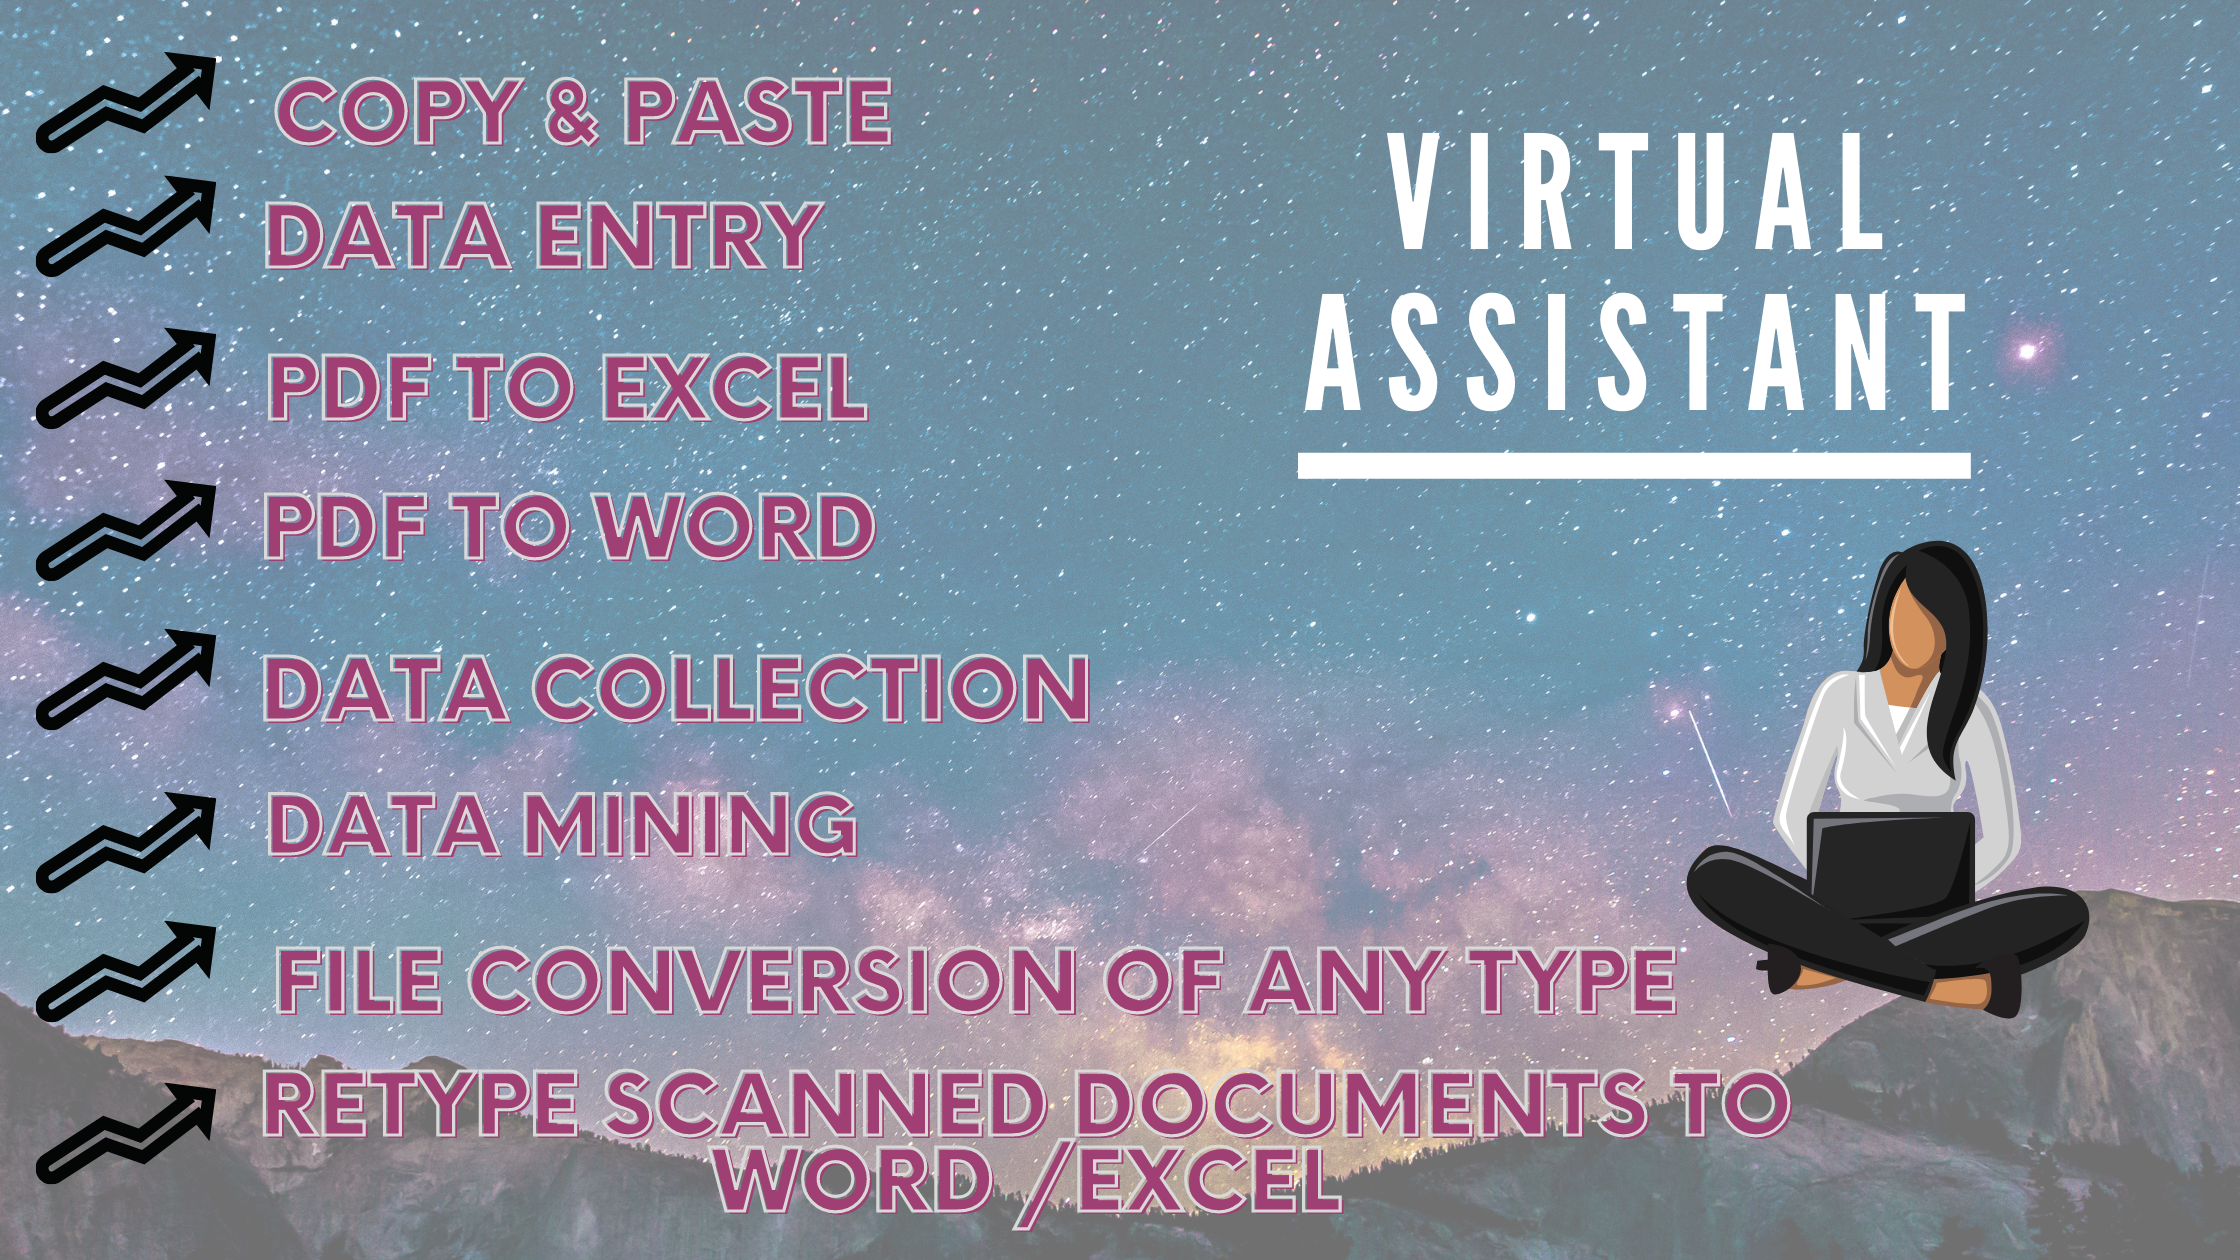 I will be your Professional Virtual Assistant as your demand